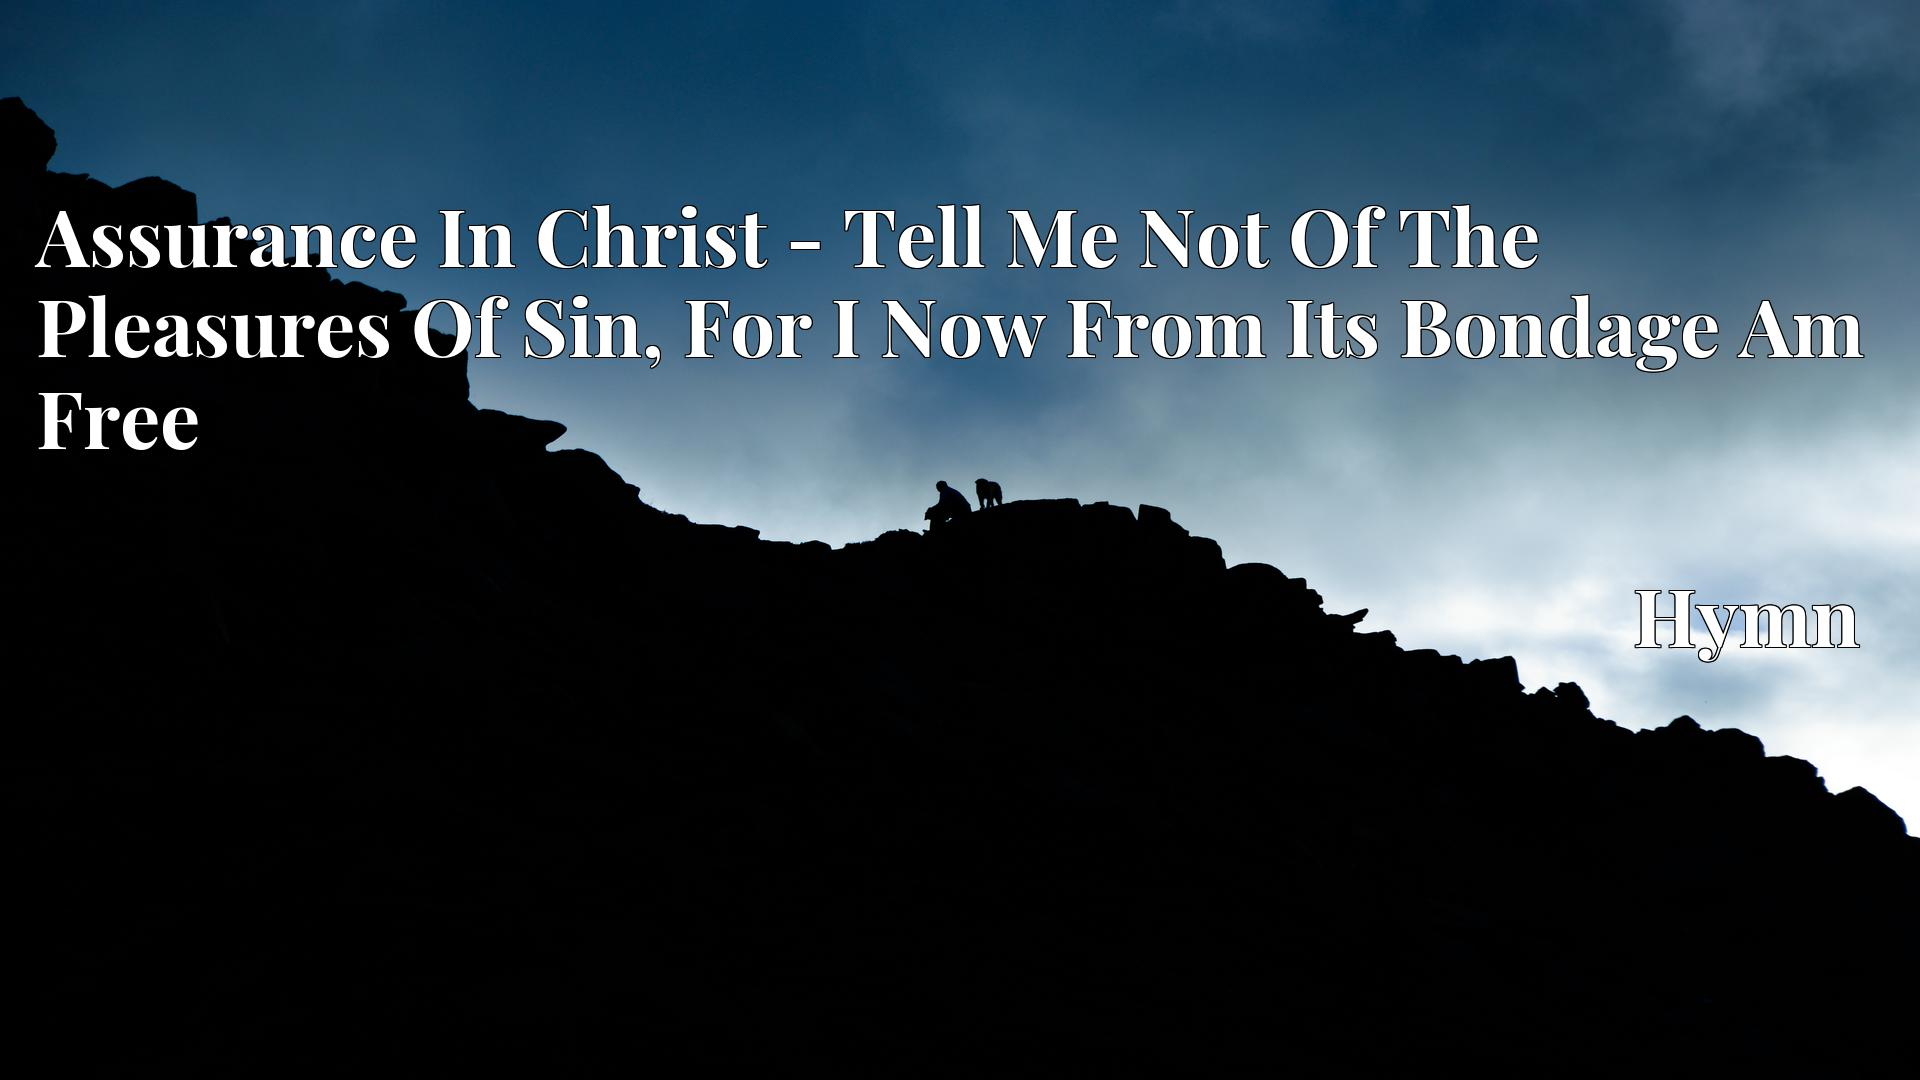 Assurance In Christ - Tell Me Not Of The Pleasures Of Sin, For I Now From Its Bondage Am Free - Hymn